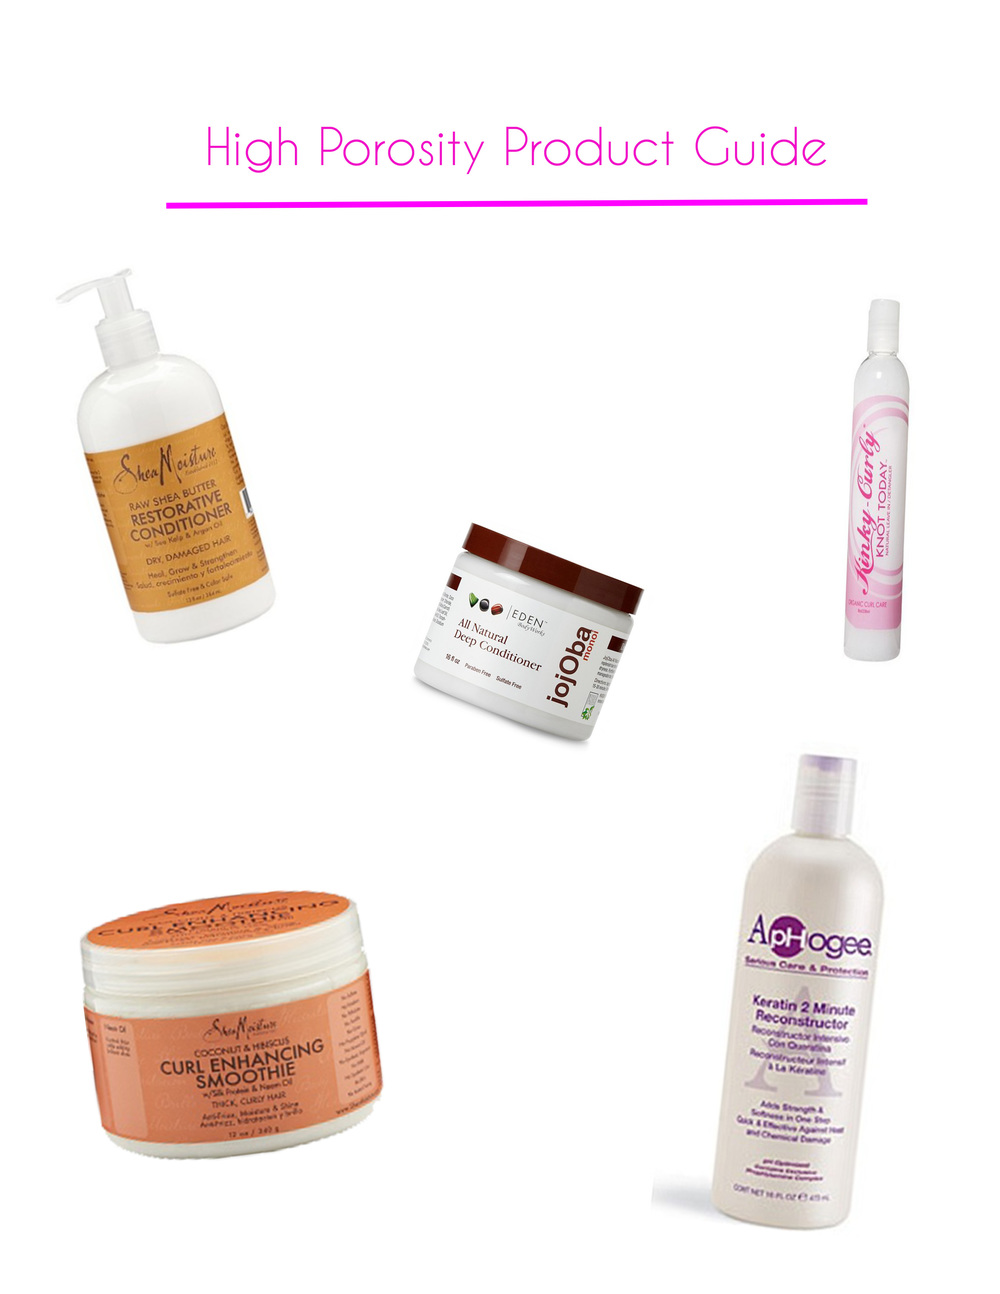 Product Guide for High Porosity